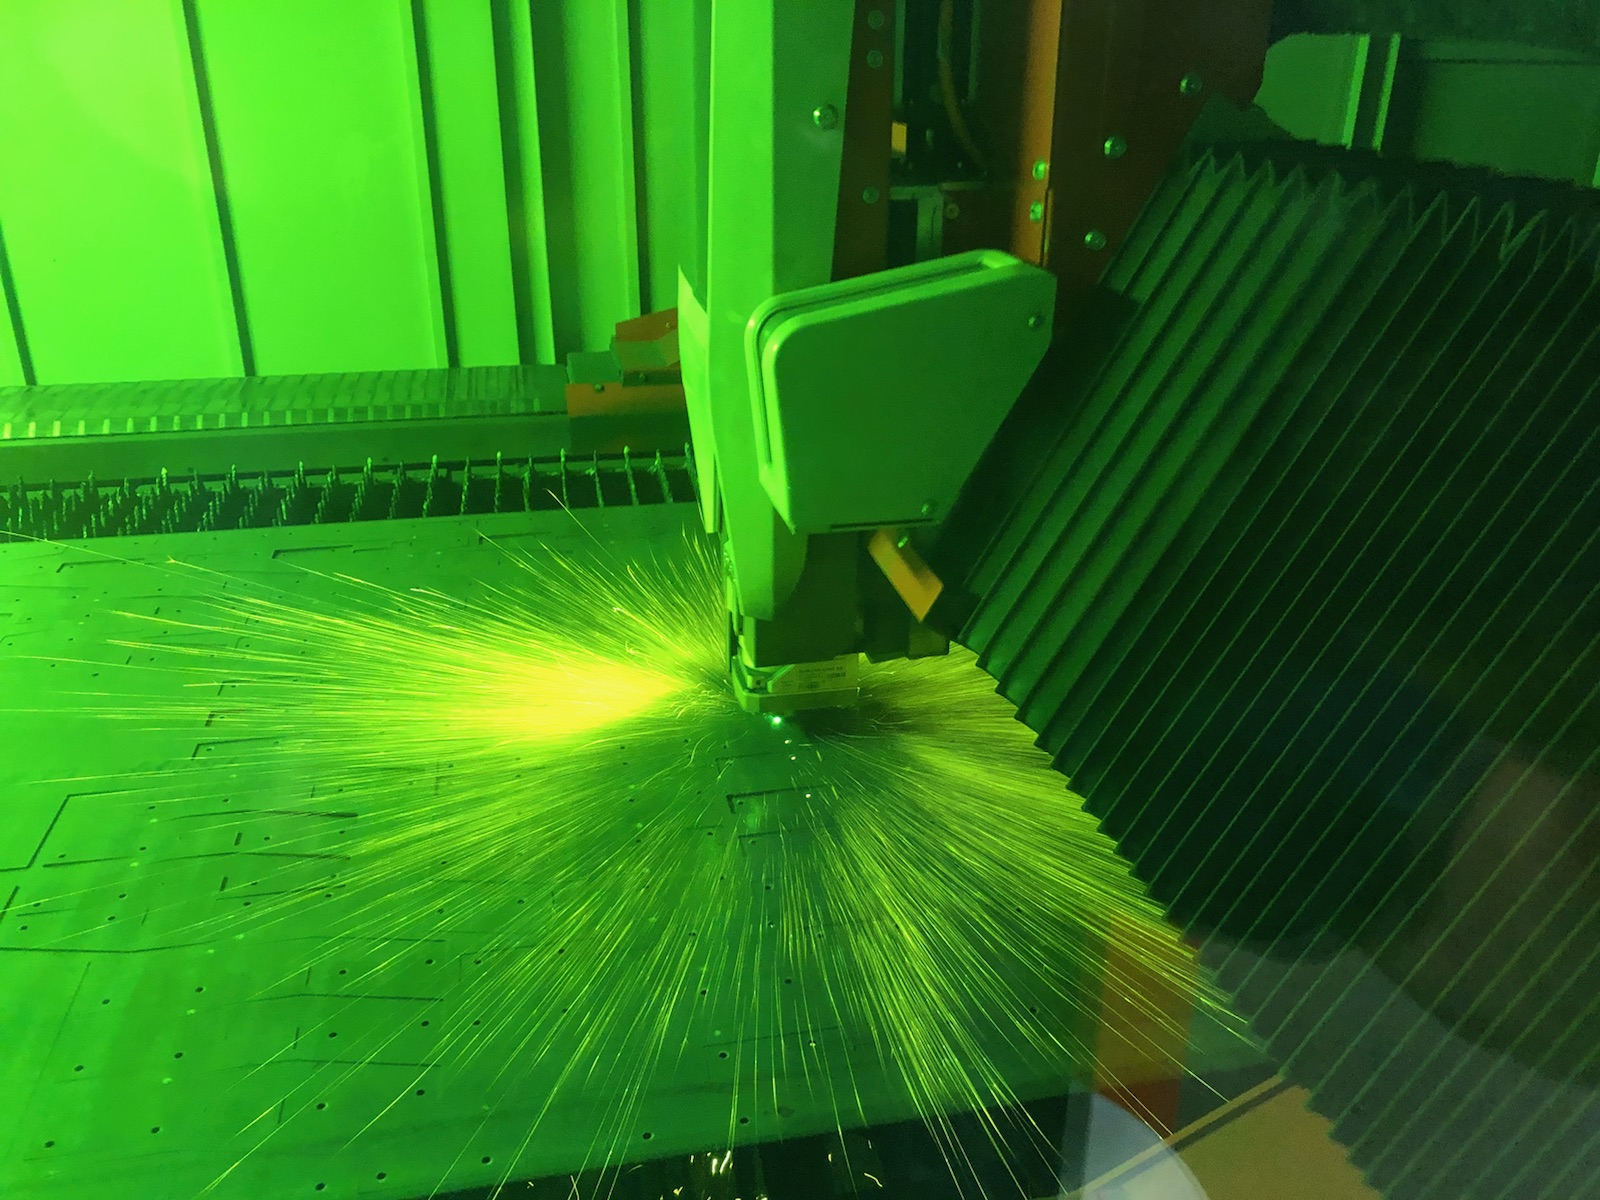 Laser cutting metal part for fabrication